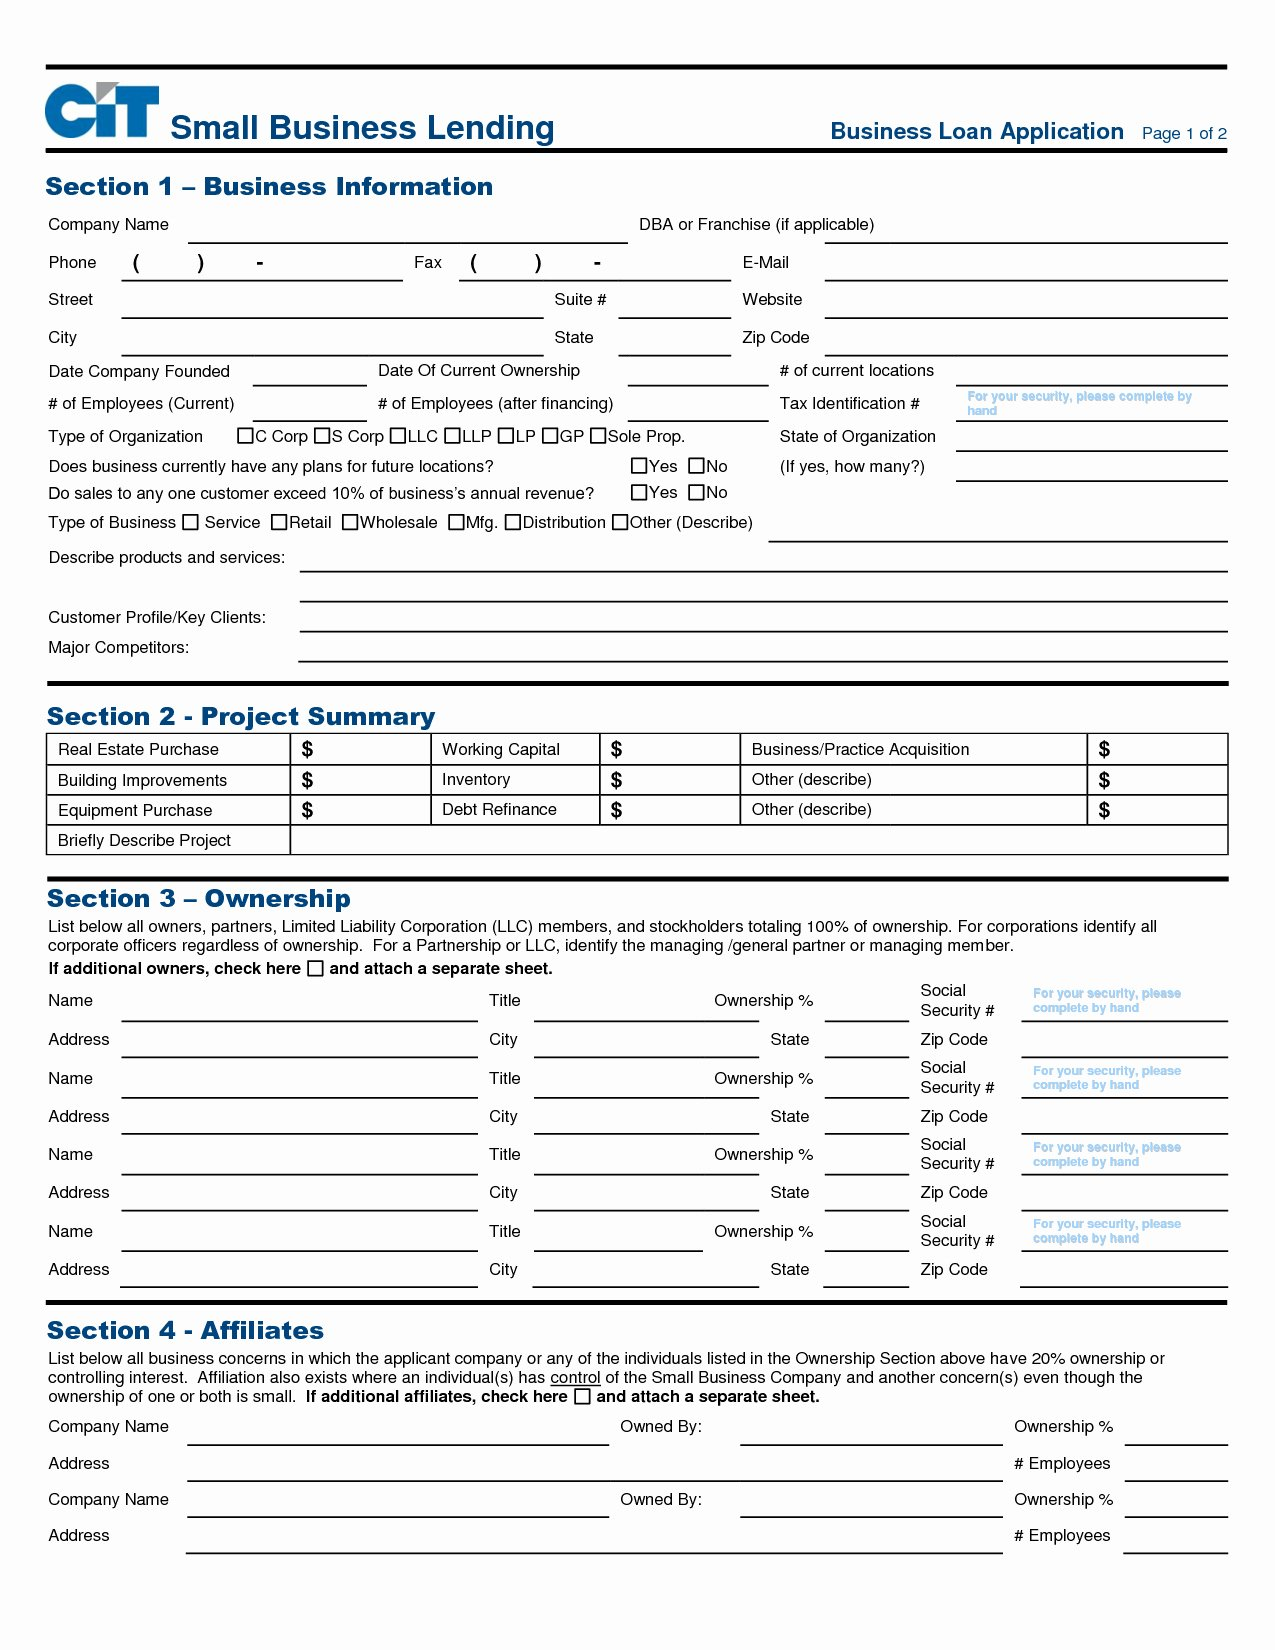 Business Loan Application Template Unique Business Application form Page 2 Register Business Address